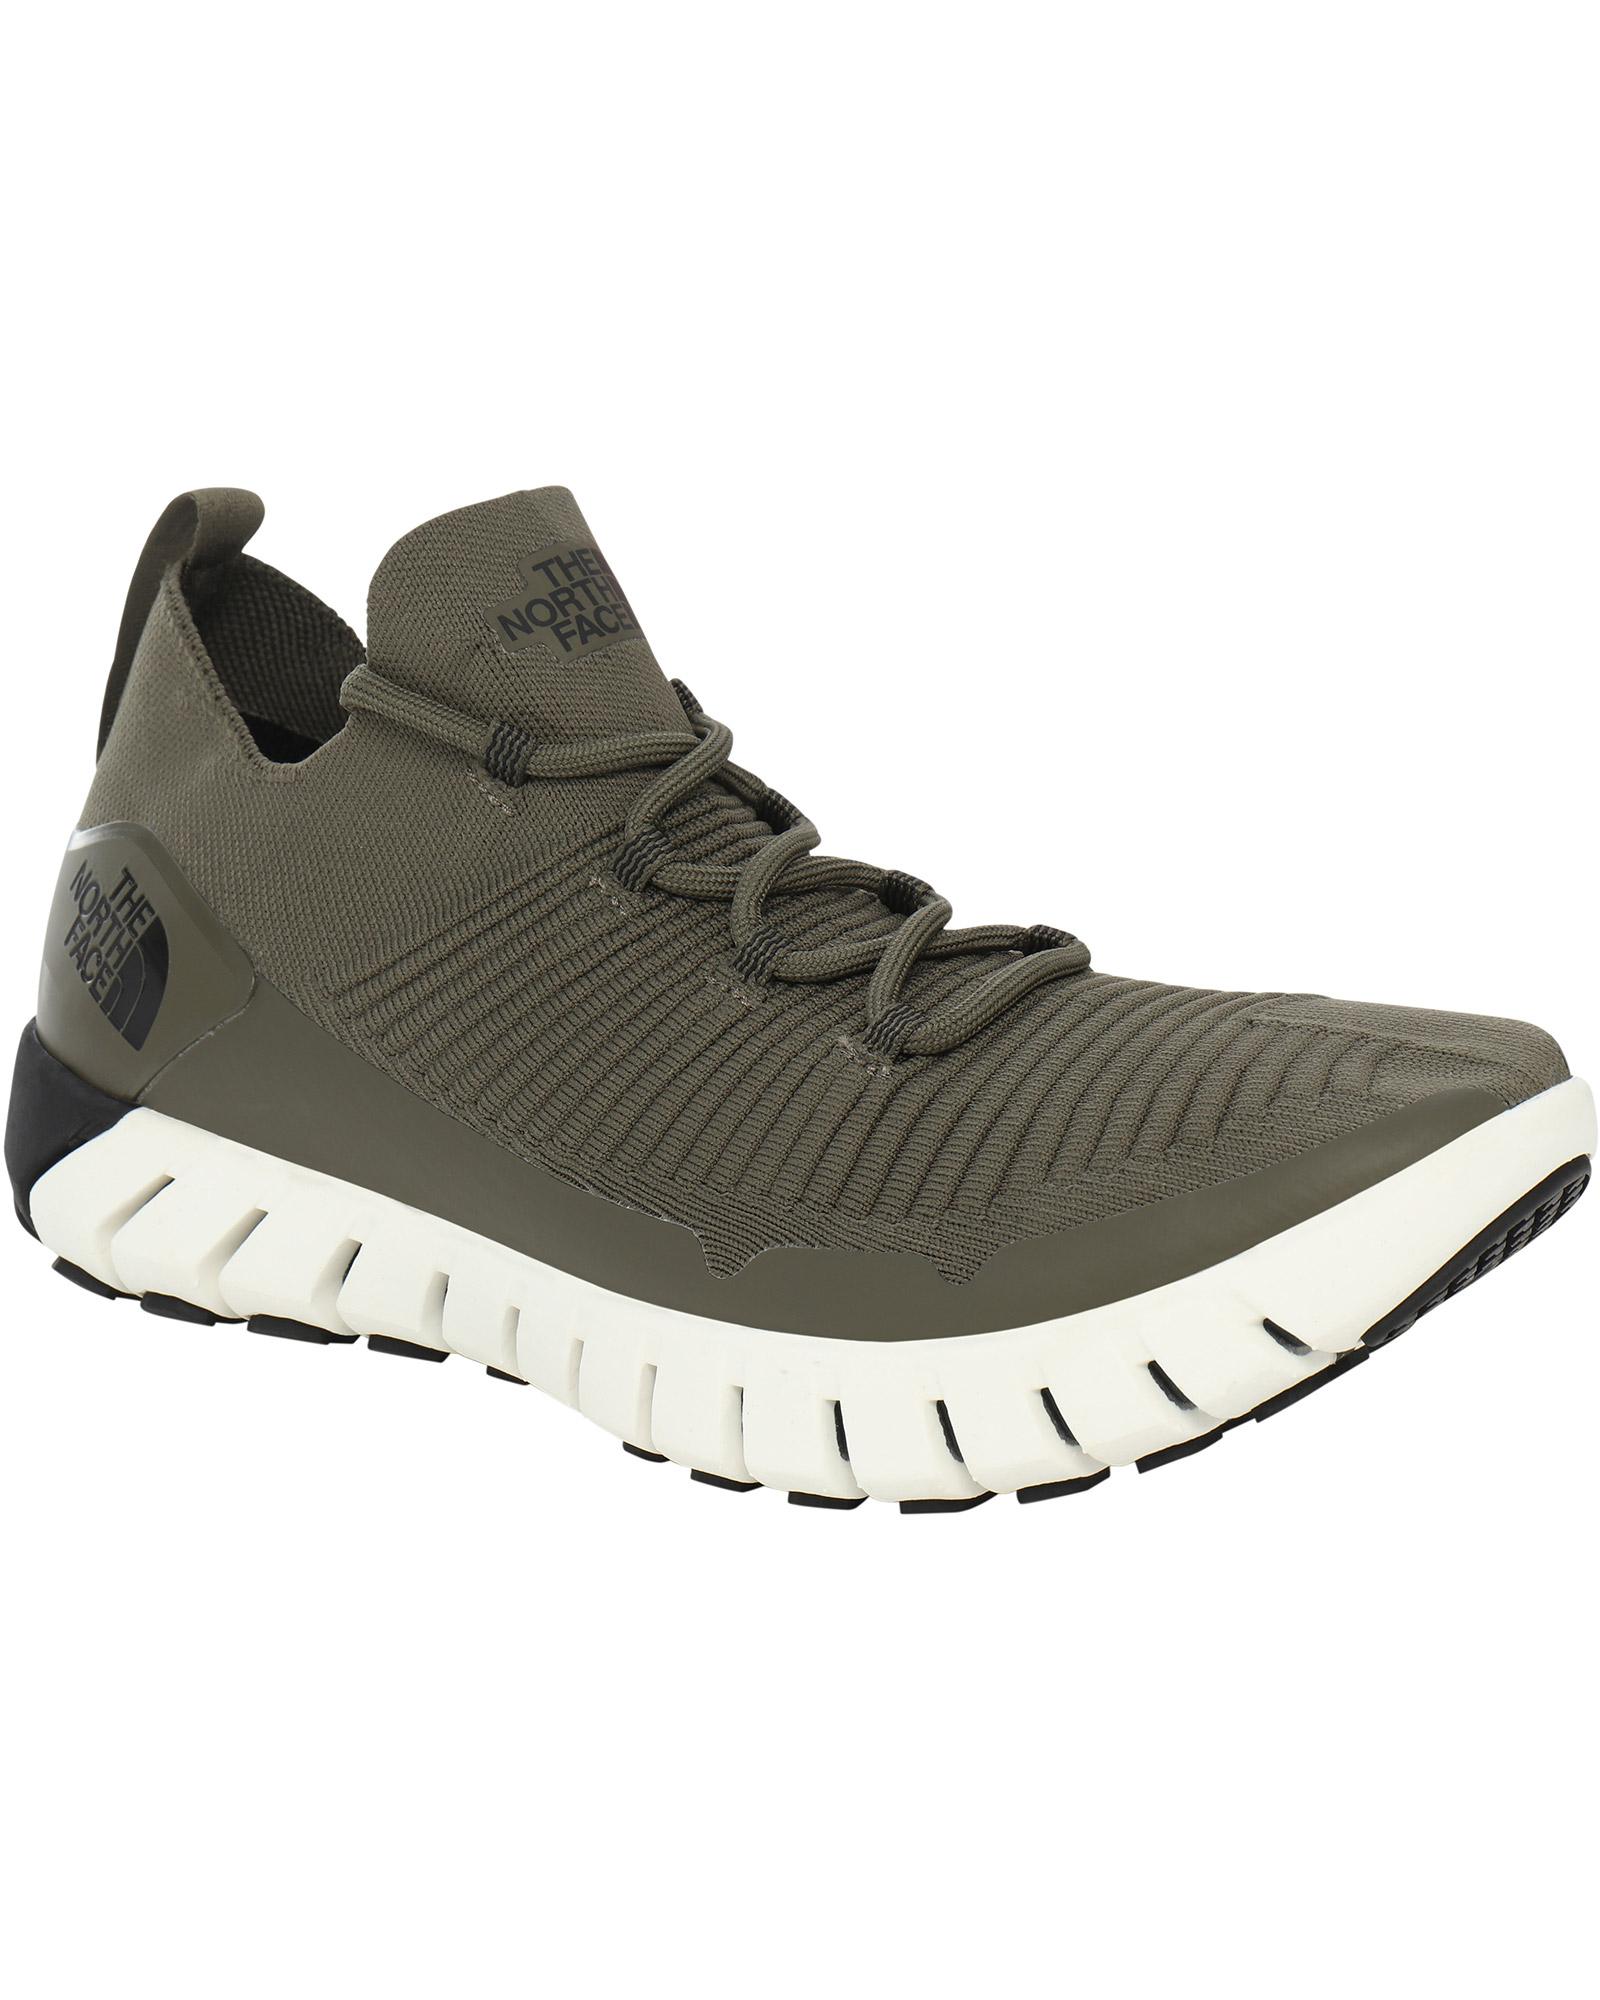 The North Face Men's Oscilate Walking Shoes New Taupe Green/TNF Black 0